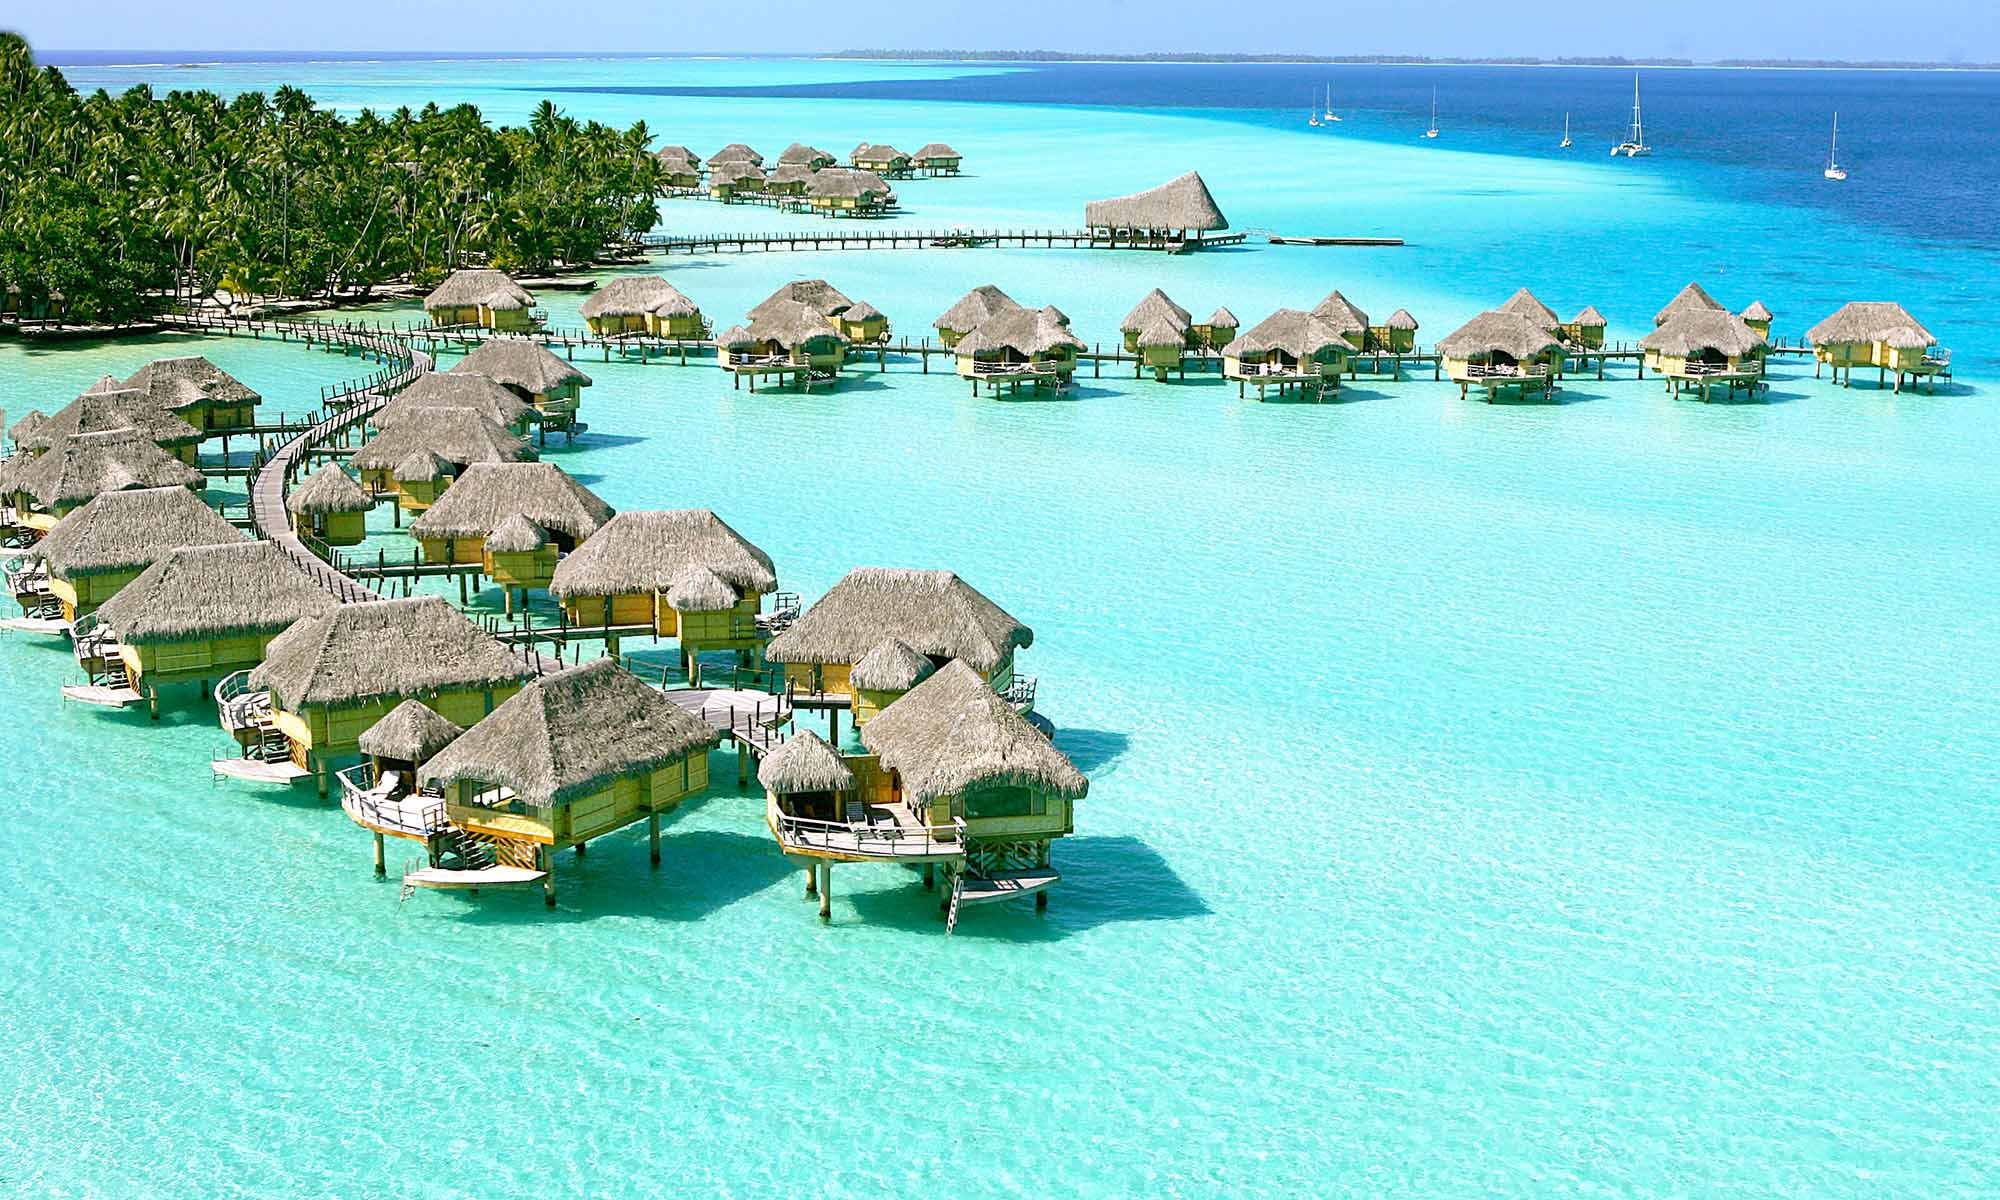 Le Taha'a Island Resort & Spa, Overwater Bungalows